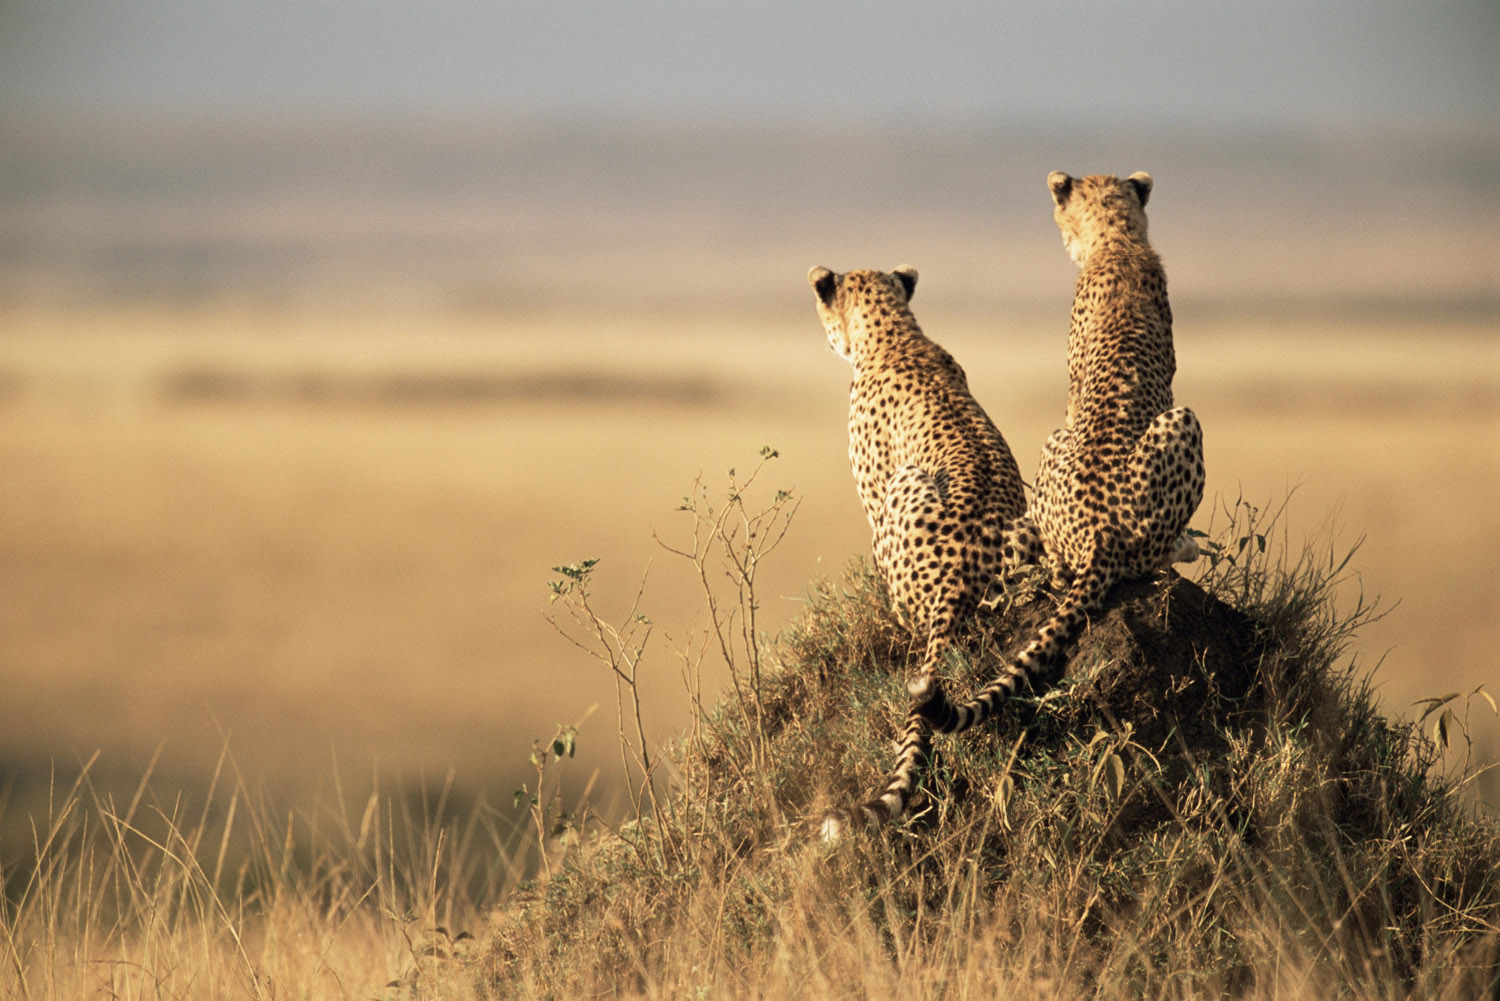 Cheetahs on look-out from a termite hill, Masai Mara National Reserve, Kenya